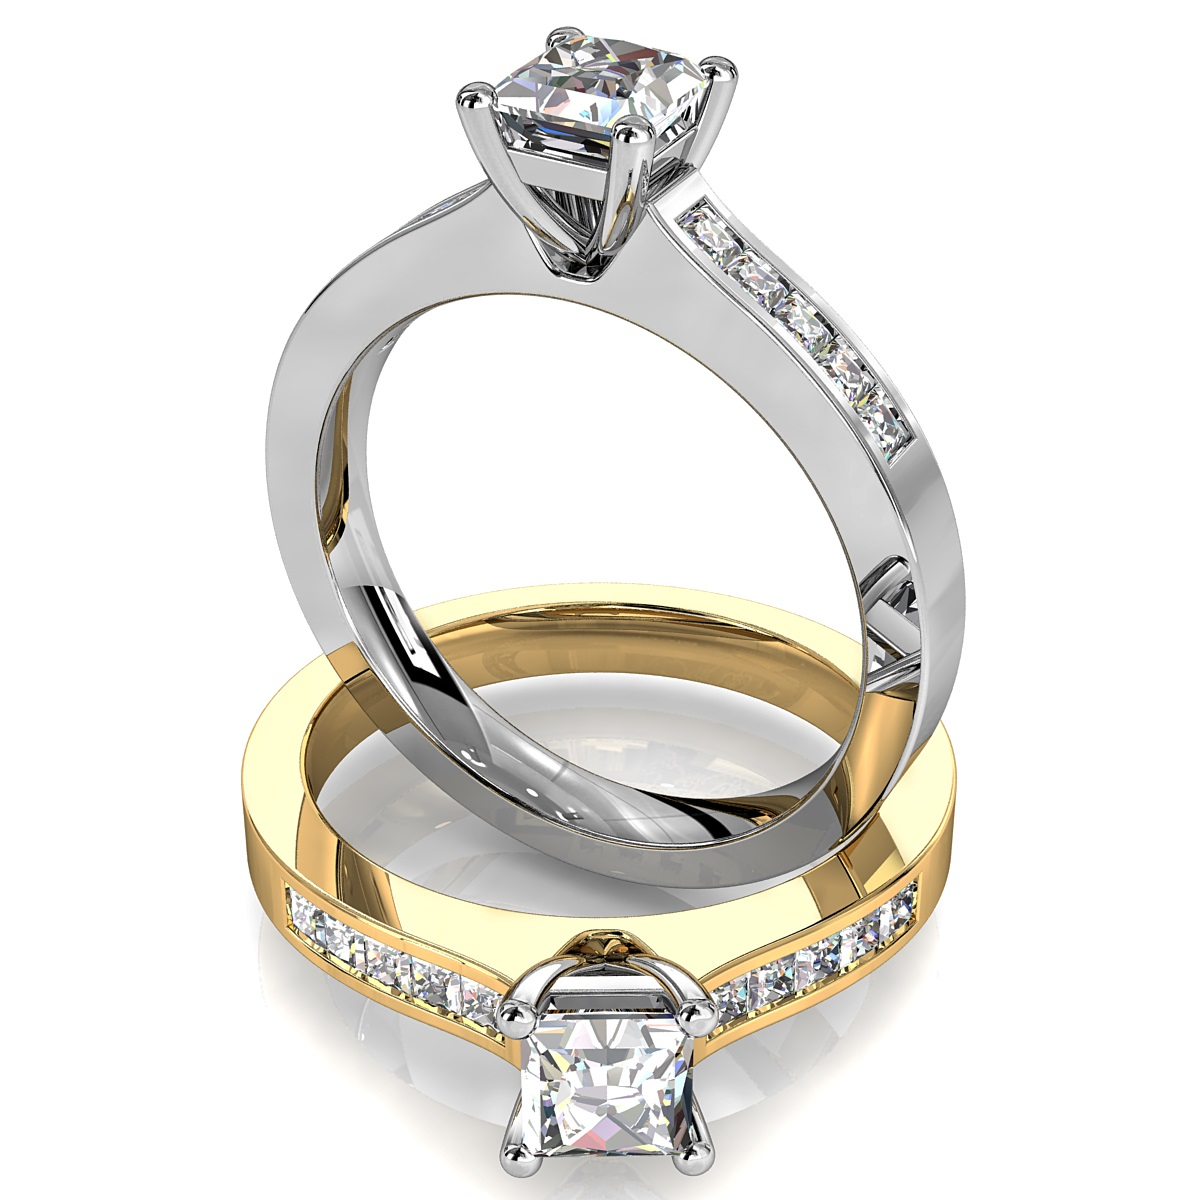 Princess Cut Solitaire Diamond Engagement Ring, 4 Claw Set on a Princess Channel Set Band.